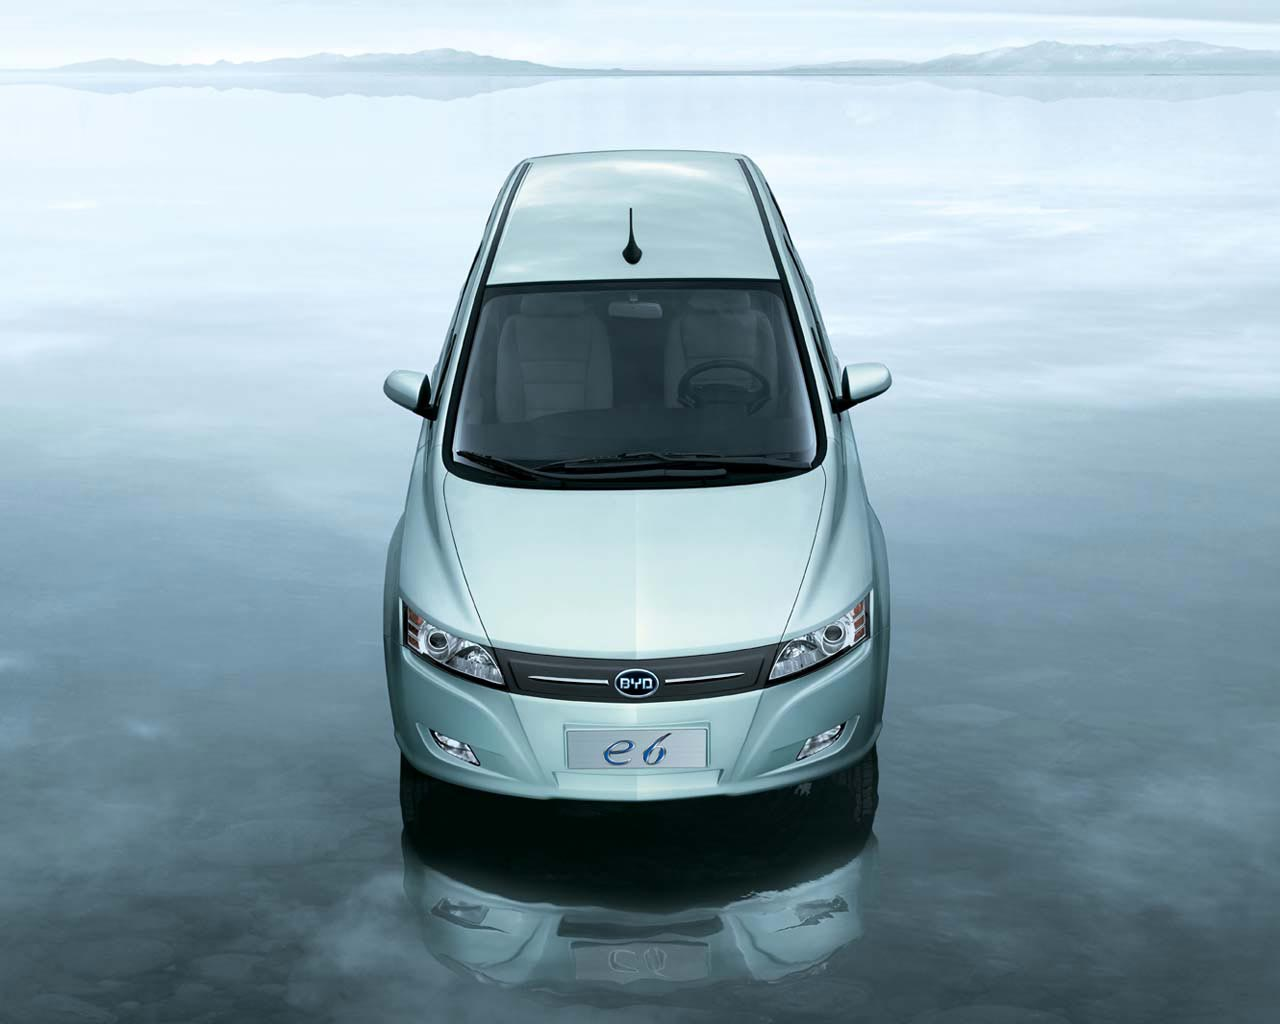 Hybrid Car Design BYD e6 electric MPV